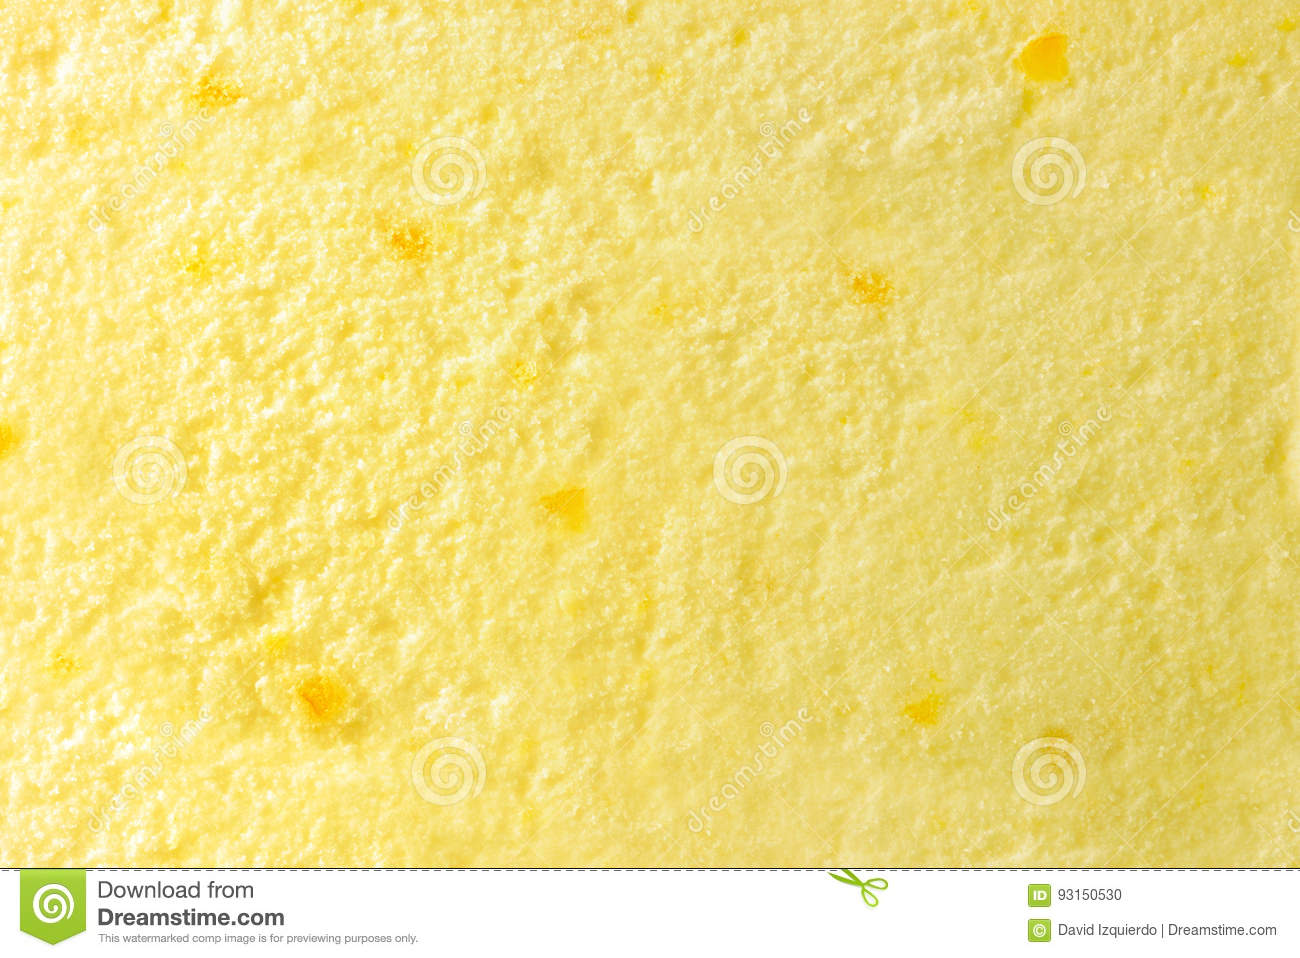 Texture Of Ice Cream Lemon Top Stock Photo - Image of choco